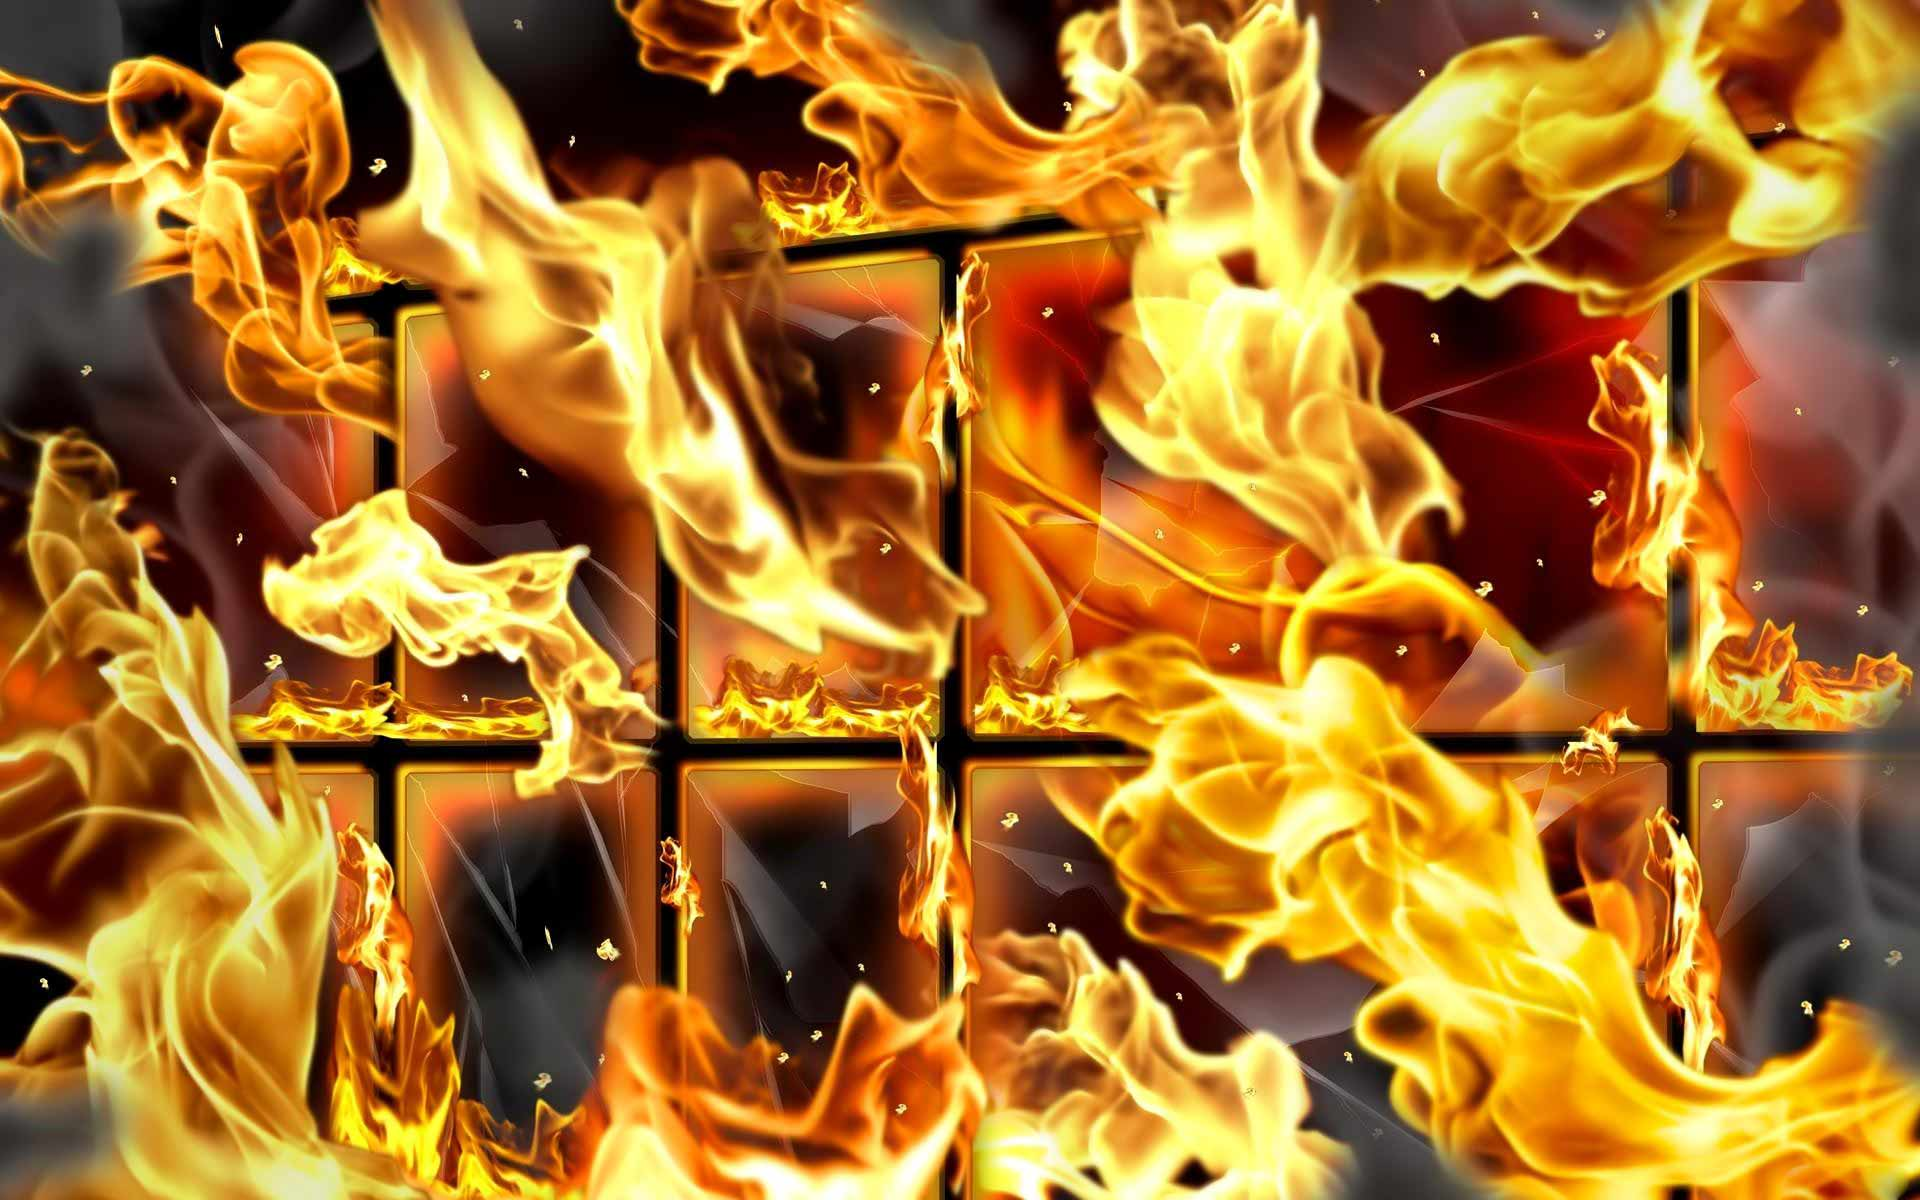 Fire Flame Wallpaper Picture 1920x1200